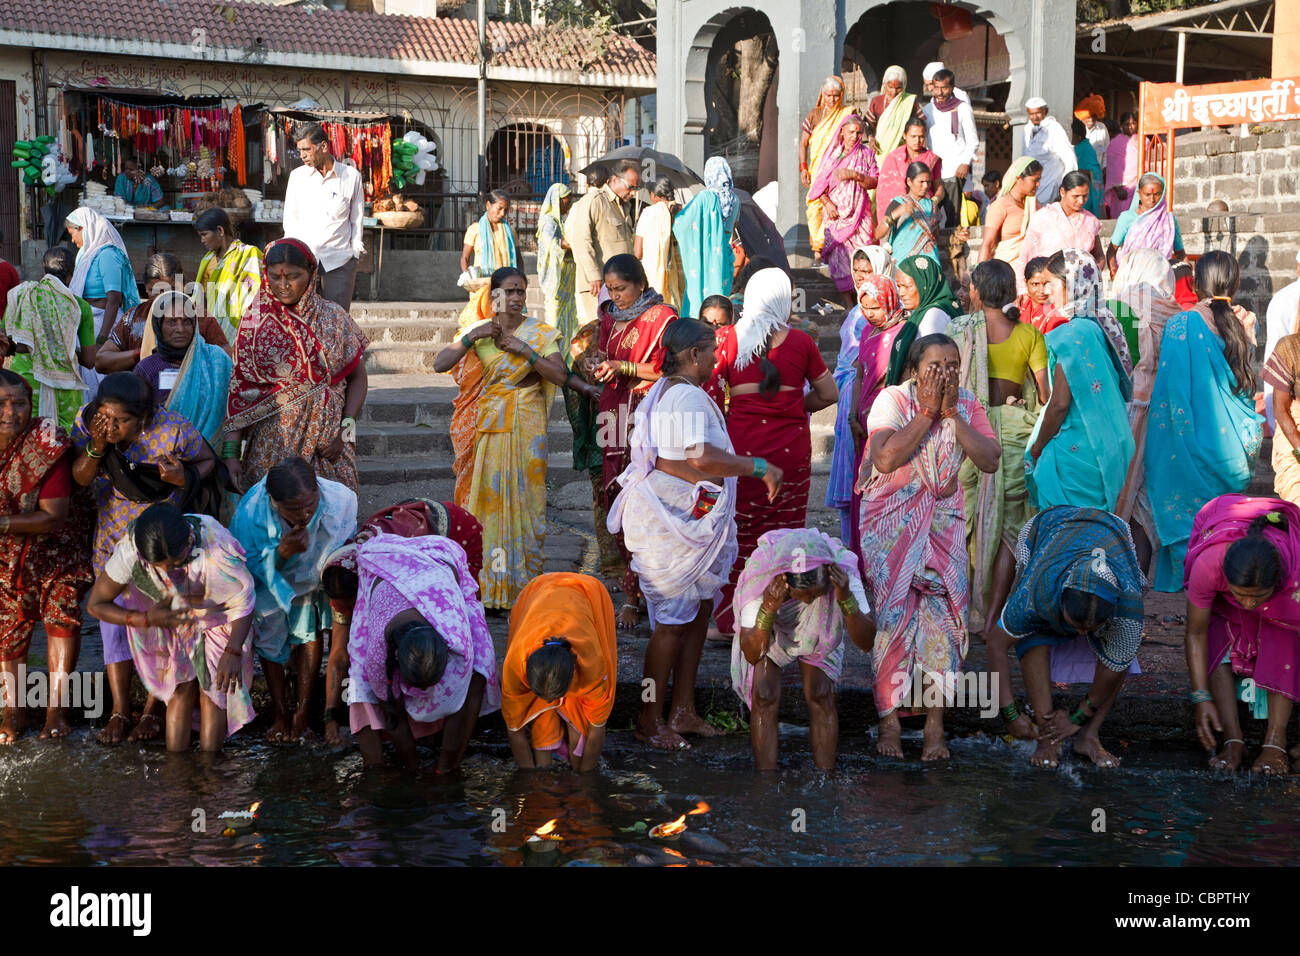 Women taking the ritual bath in the sacred waters of the Godavari river. Ram Kund. Nasik. India Stock Photo